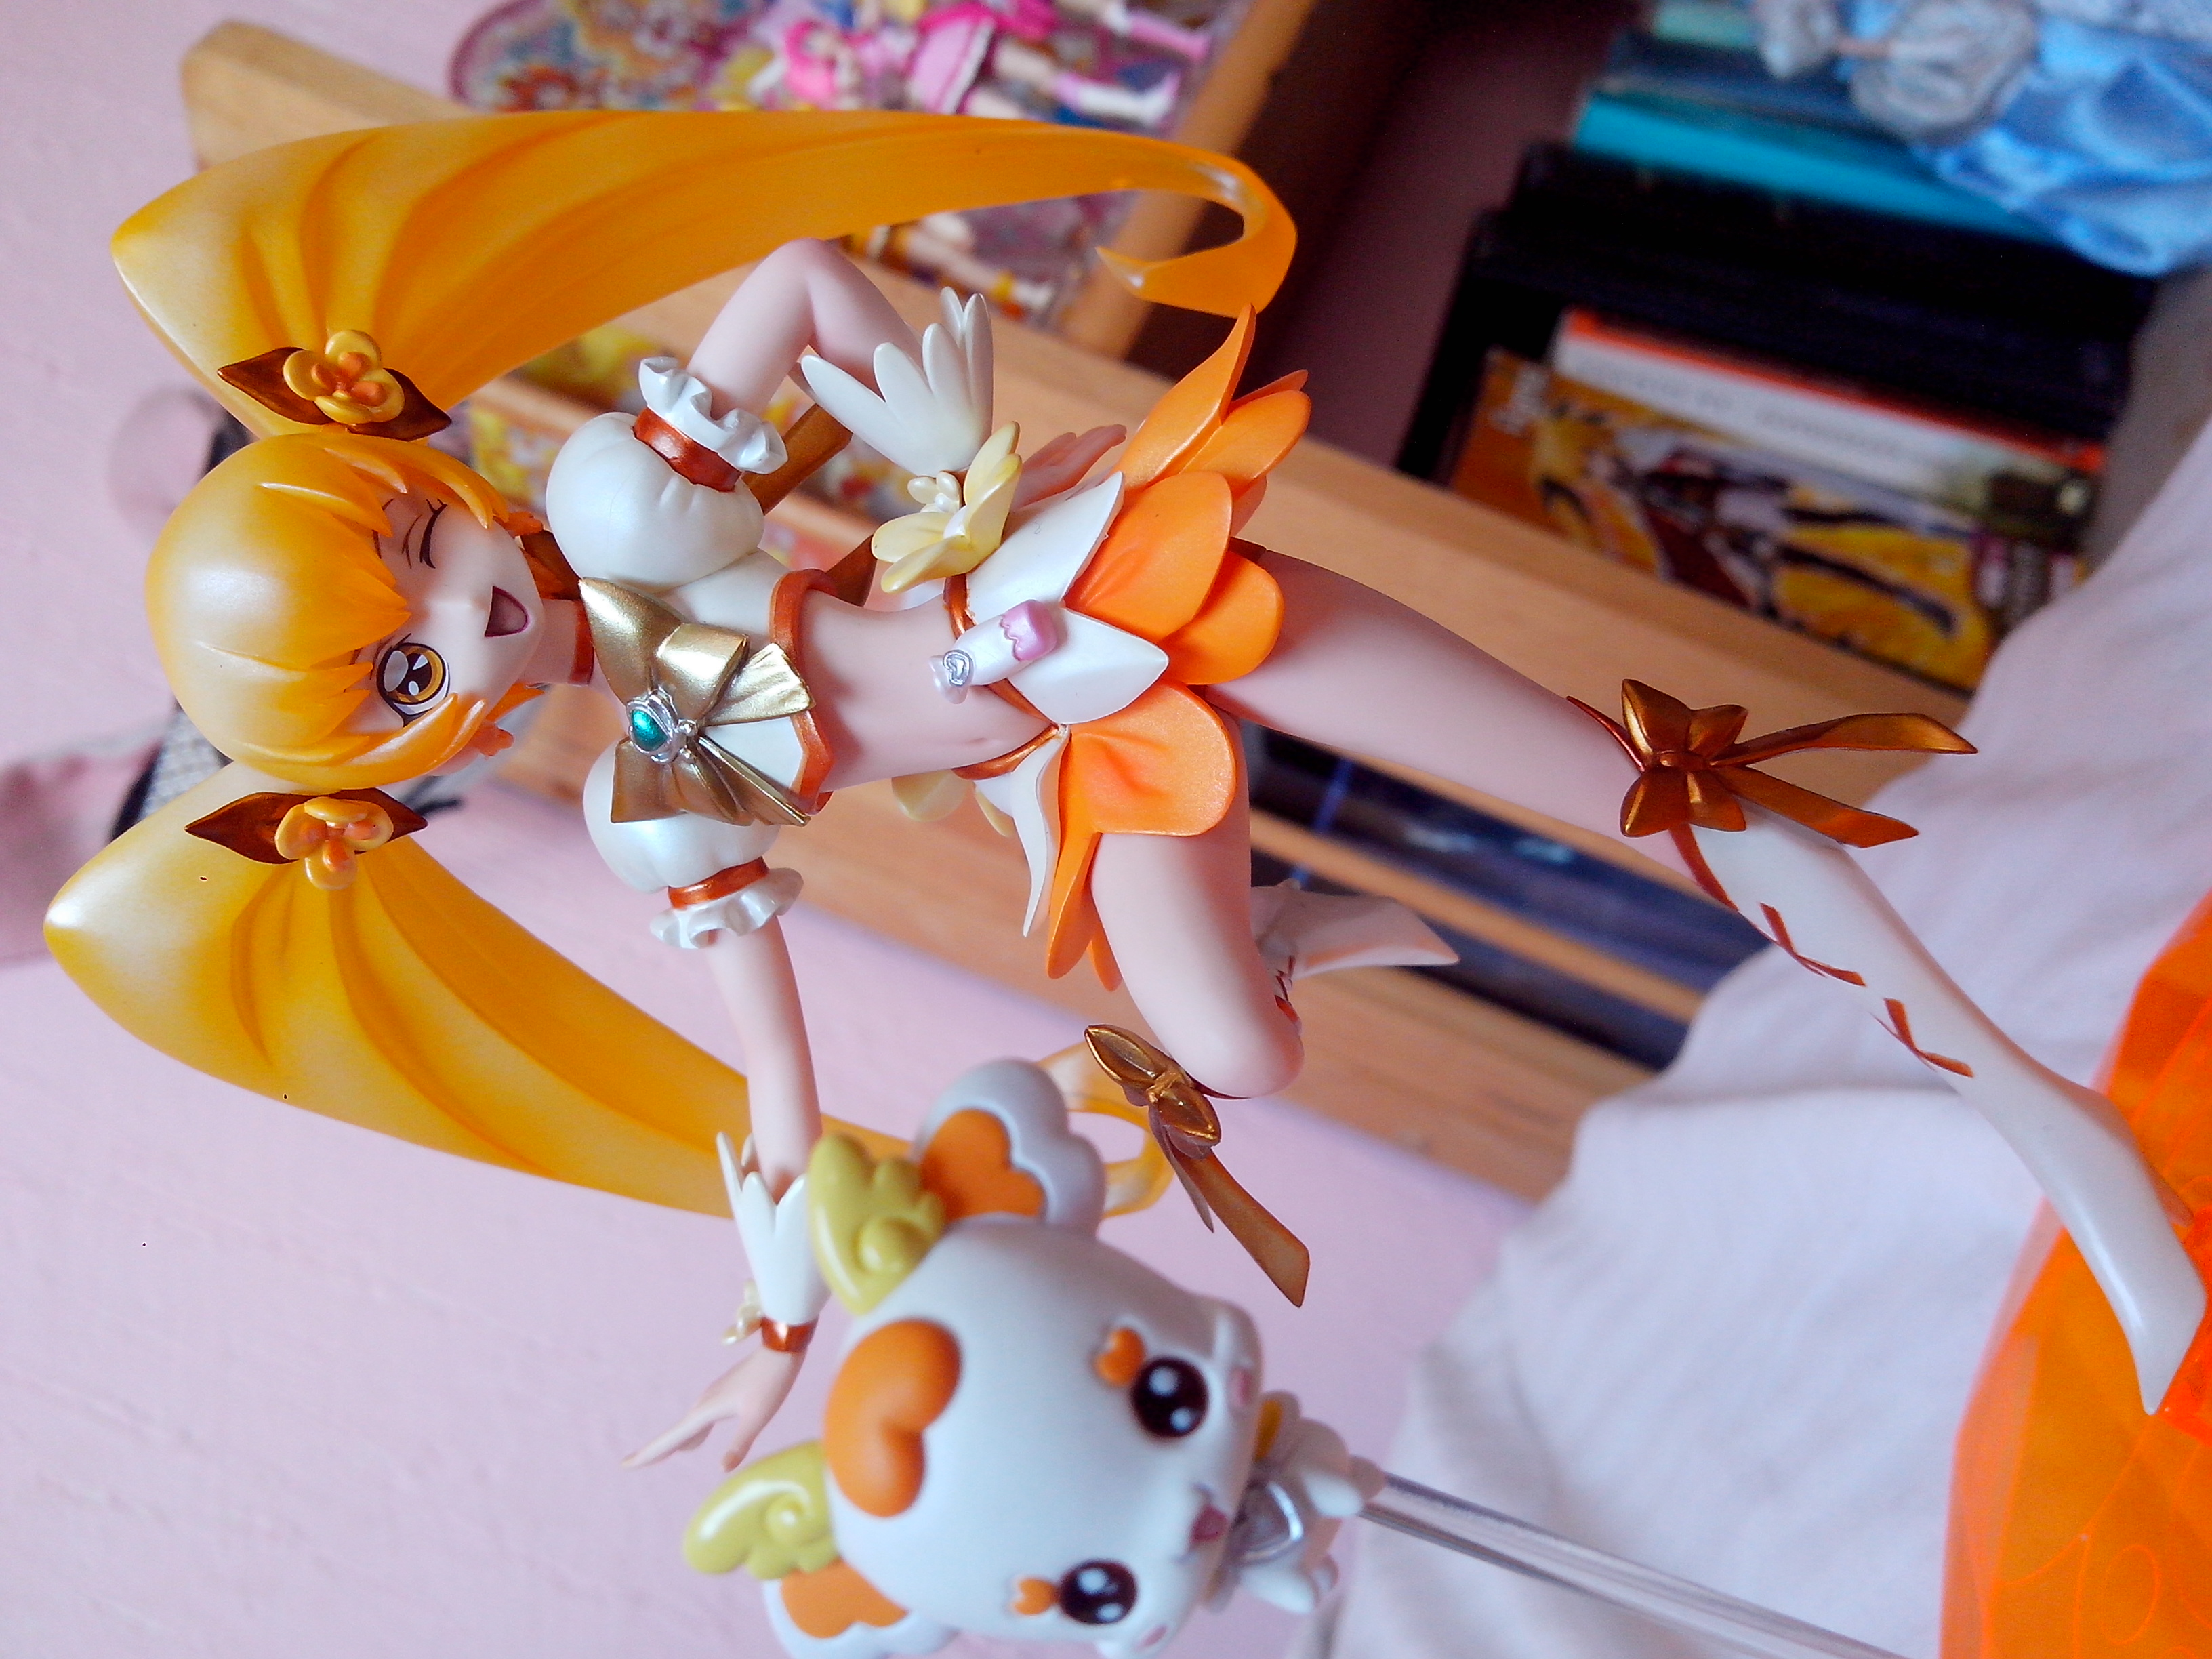 blond_hair twintails magical_girl wink yellow_eyes white_dress pet flowers megahouse yellow boots white_boots excellent_model yellow_clothes precure dynamic_pose attm heartcatch_precure! cure_sunshine potpourri